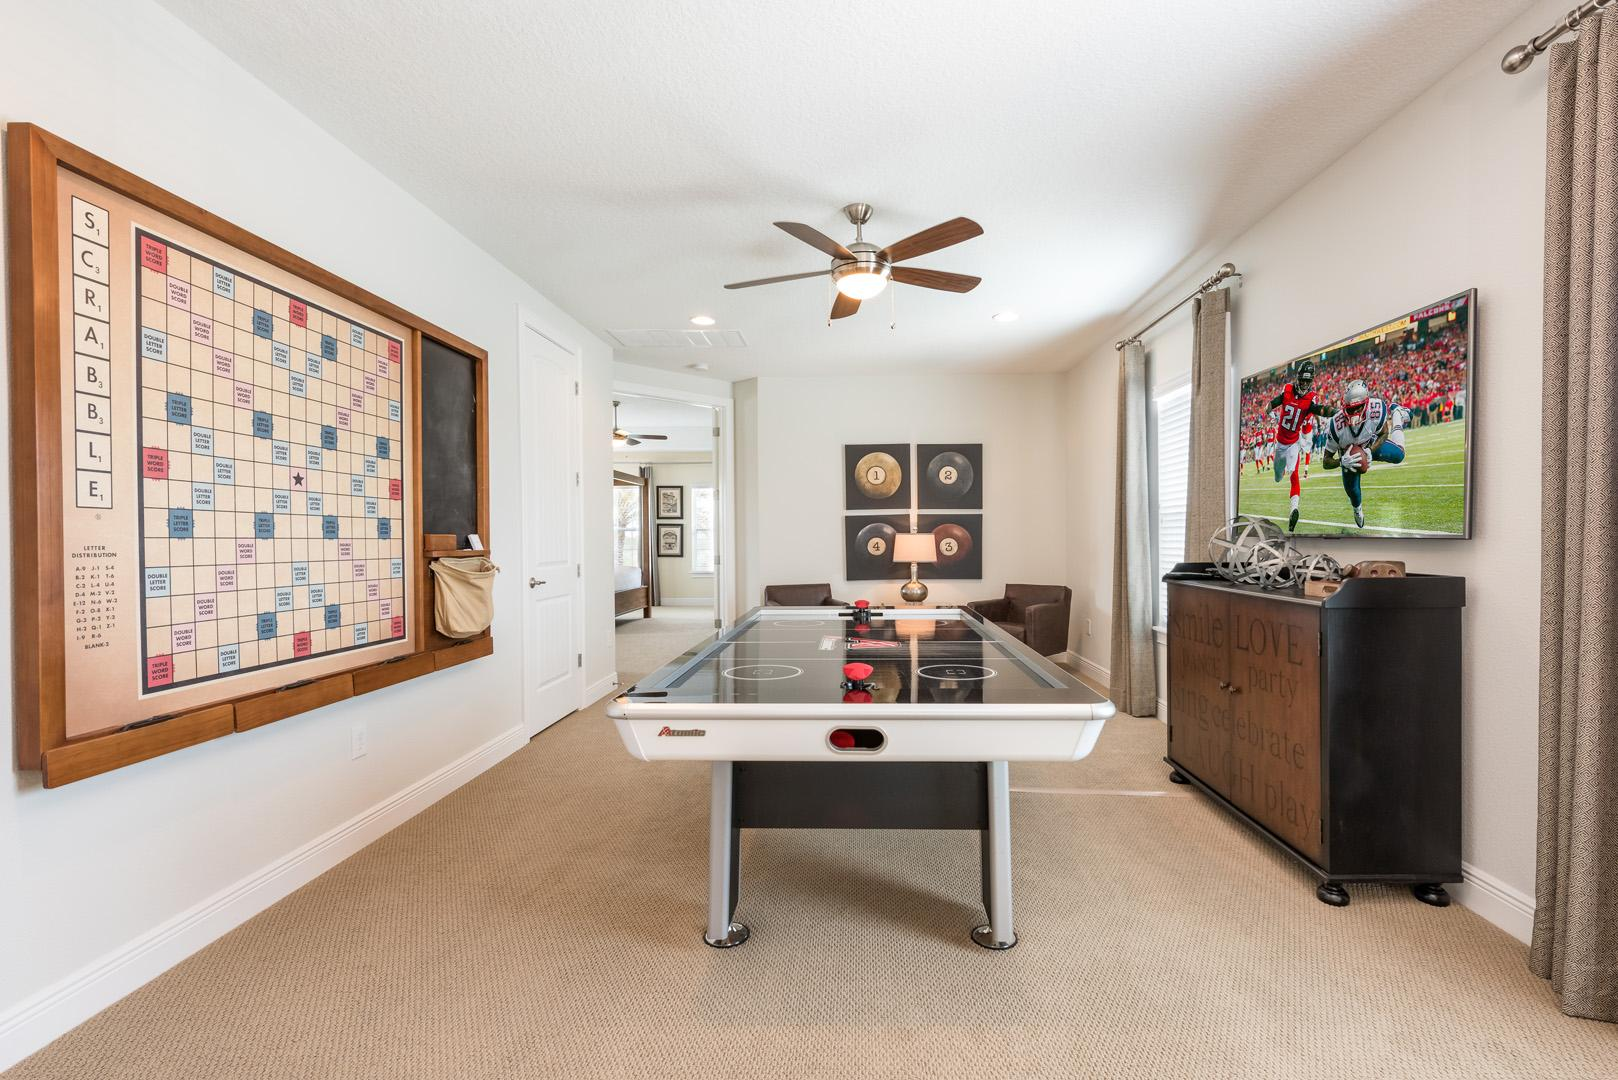 Property Image 1 - Inviting Home with Games near Disney World